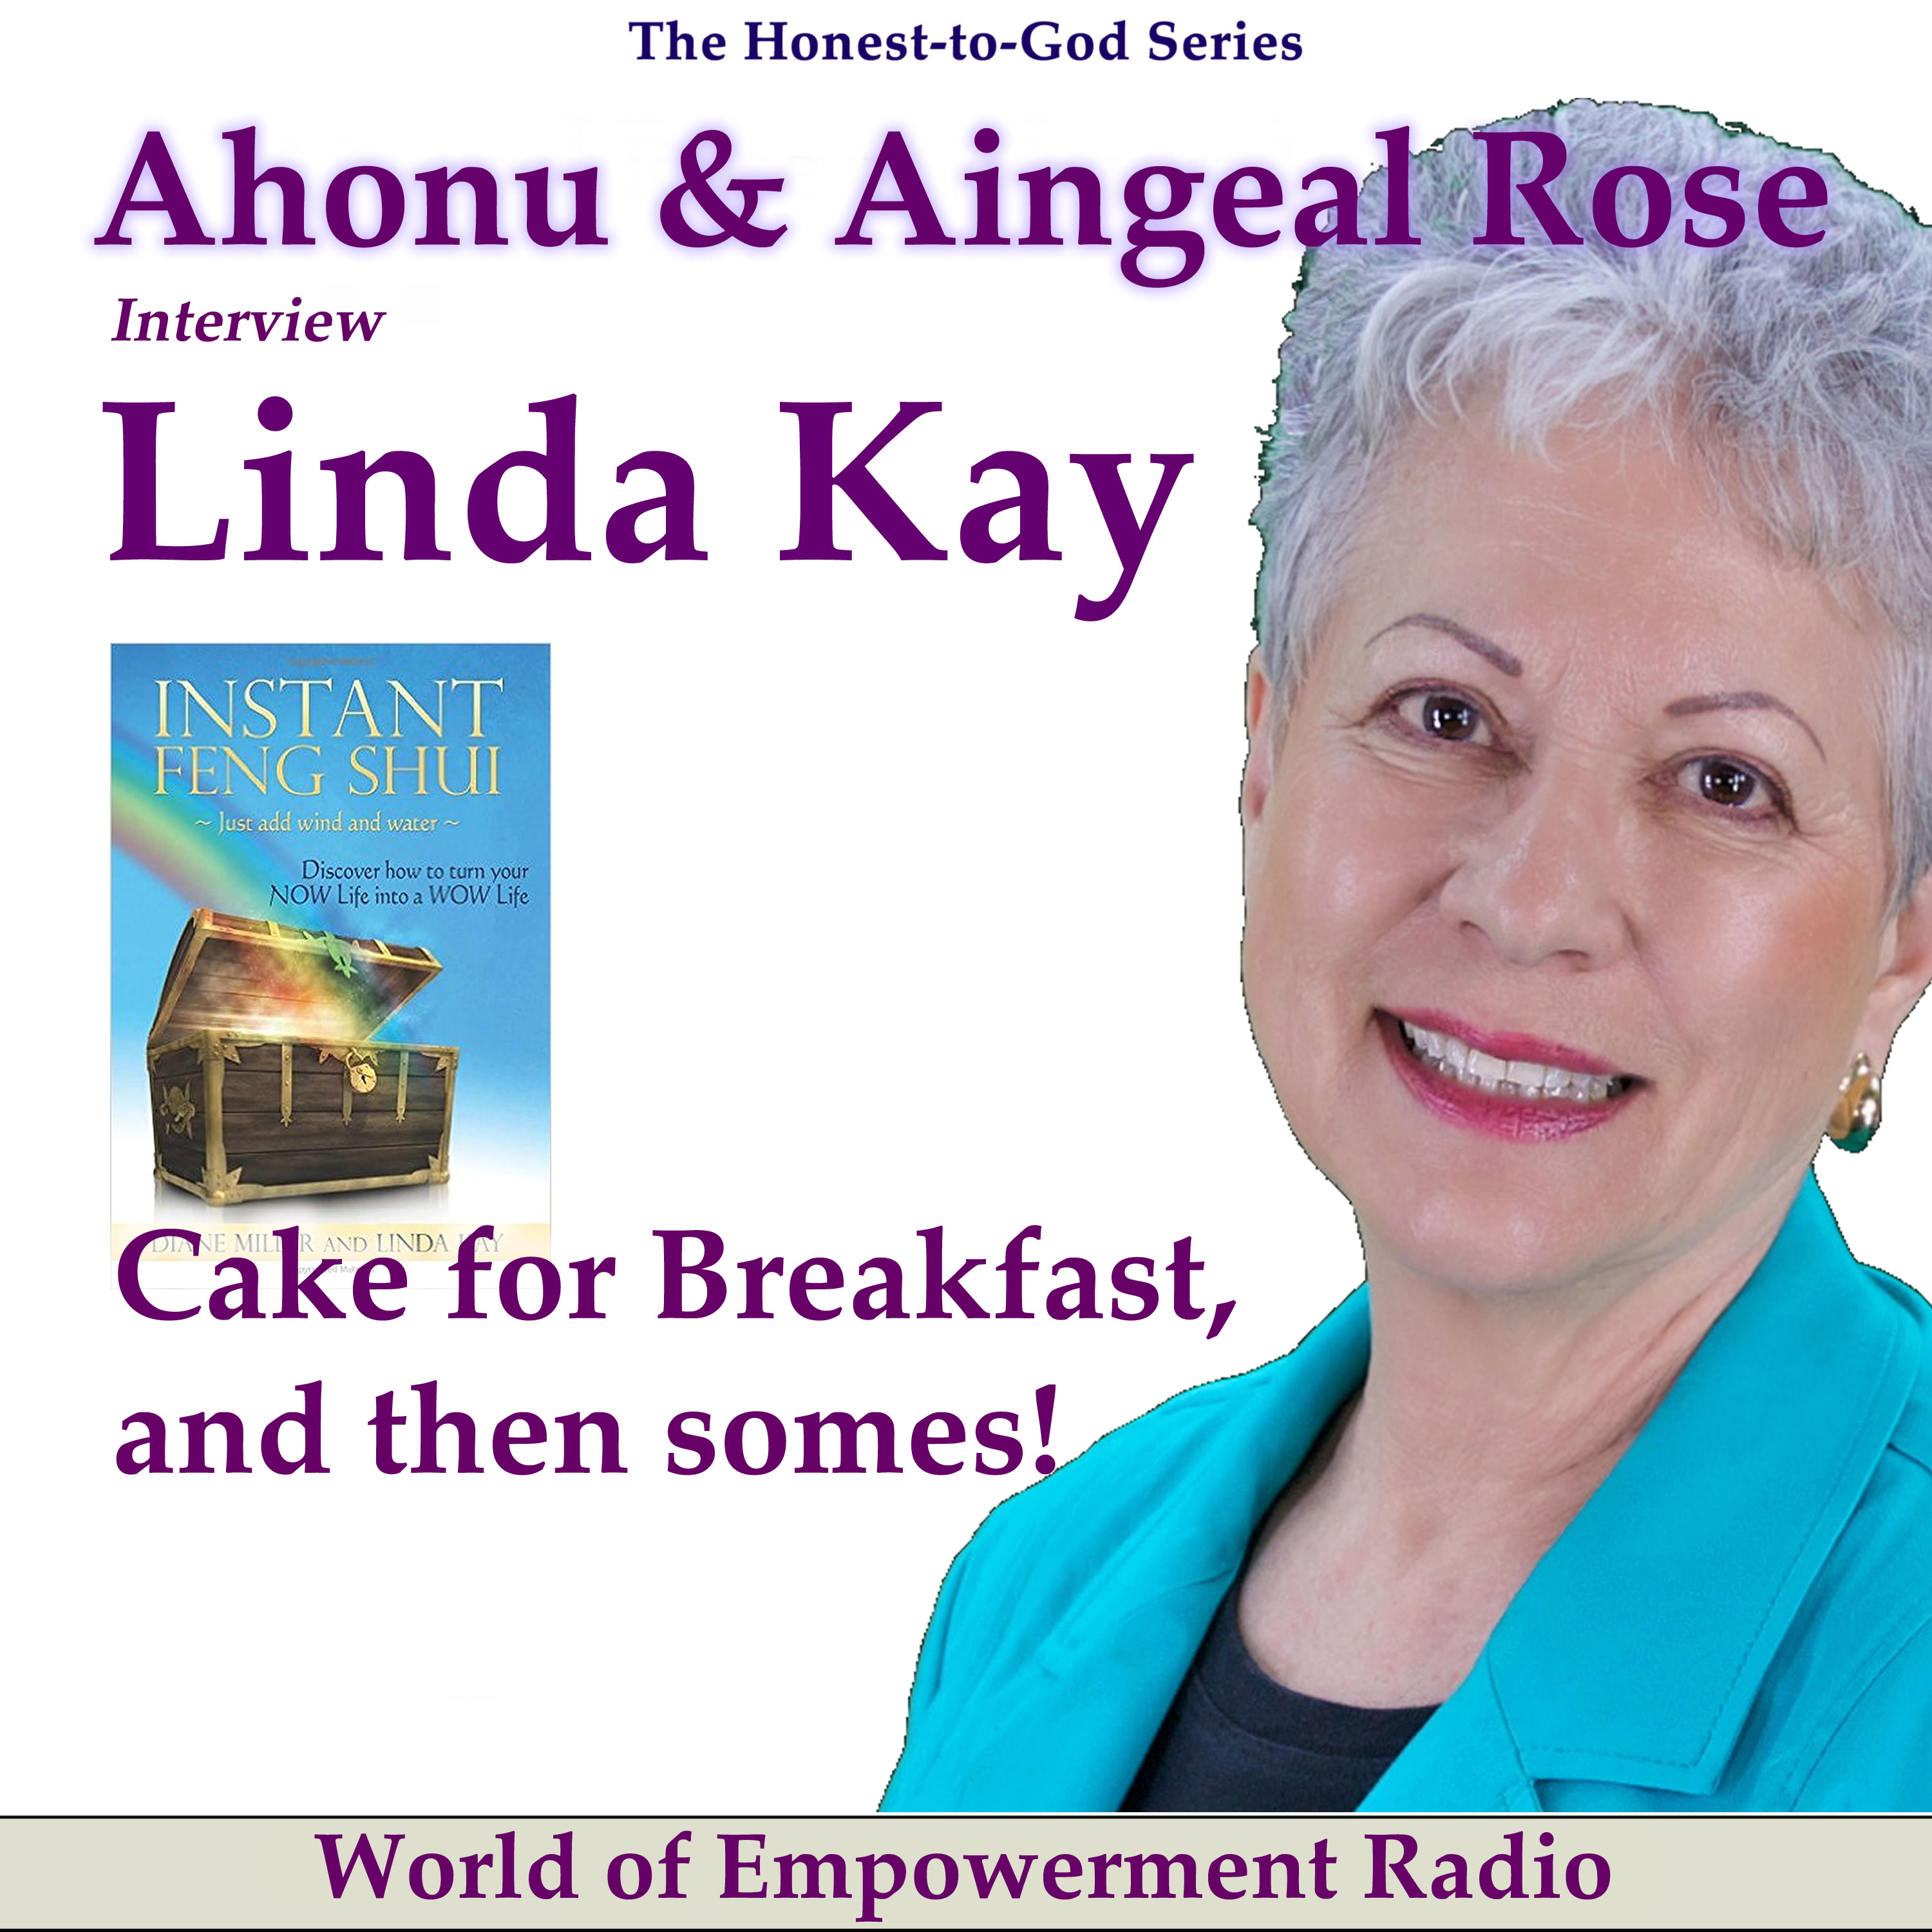 Linda Kay on the Honest-to-God Series on World of Empowerment Radio with Ahonu & Aingeal Rose